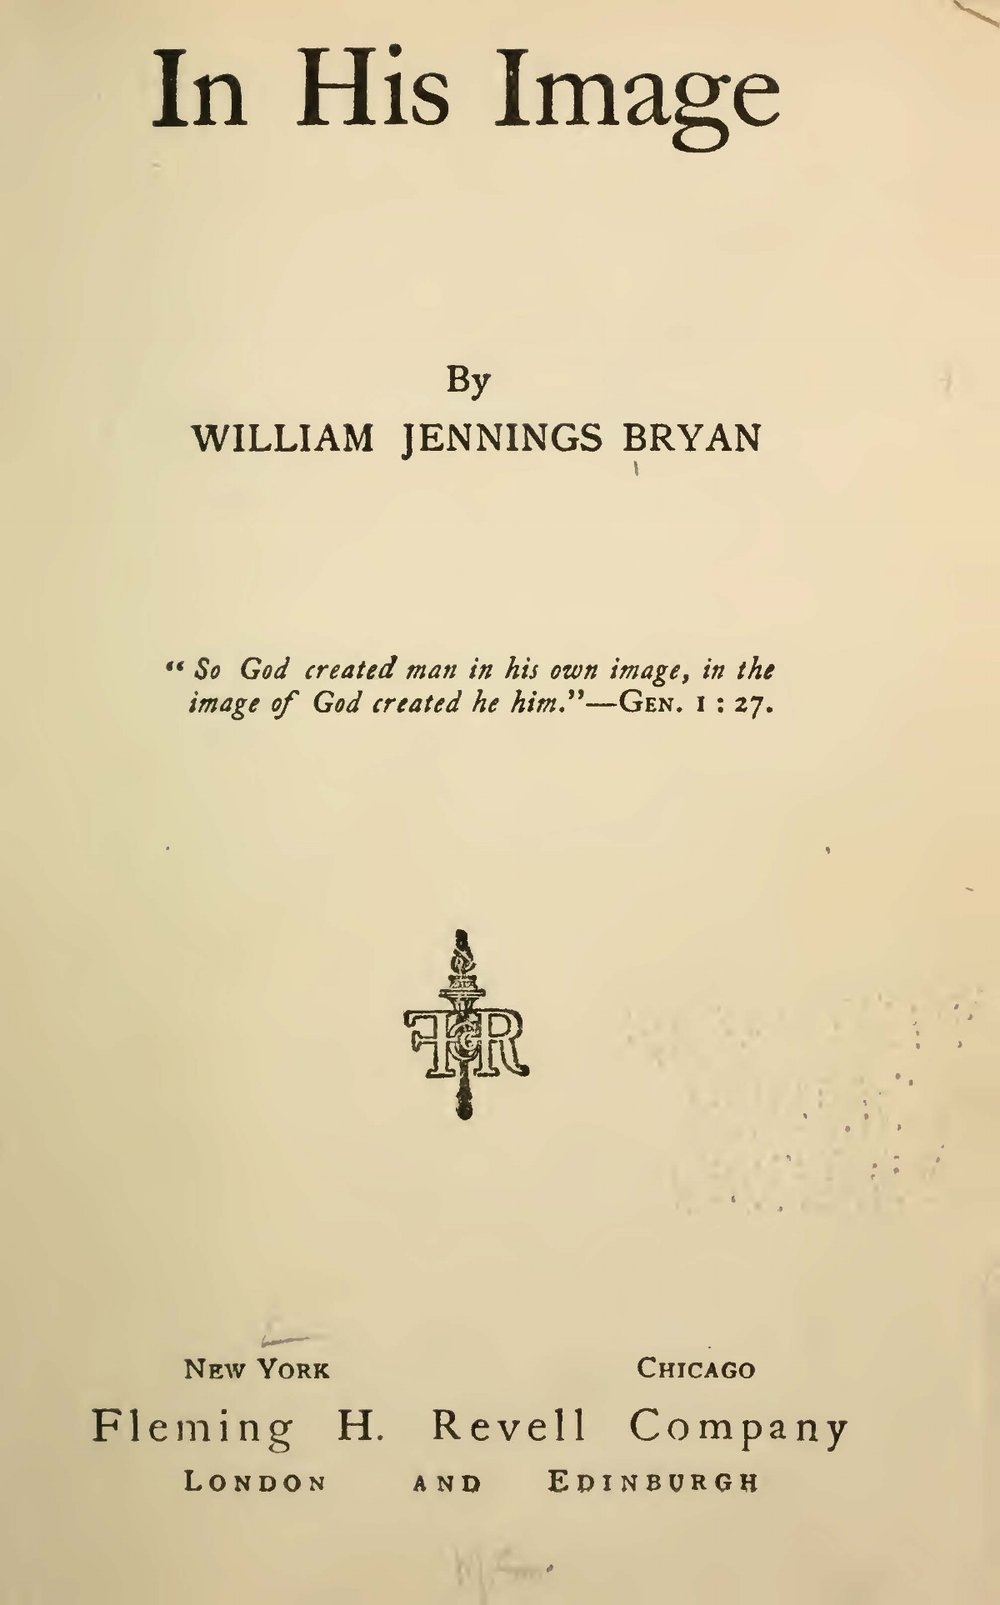 Bryan, Sr., William Jennings, In His Image Title Page.jpg